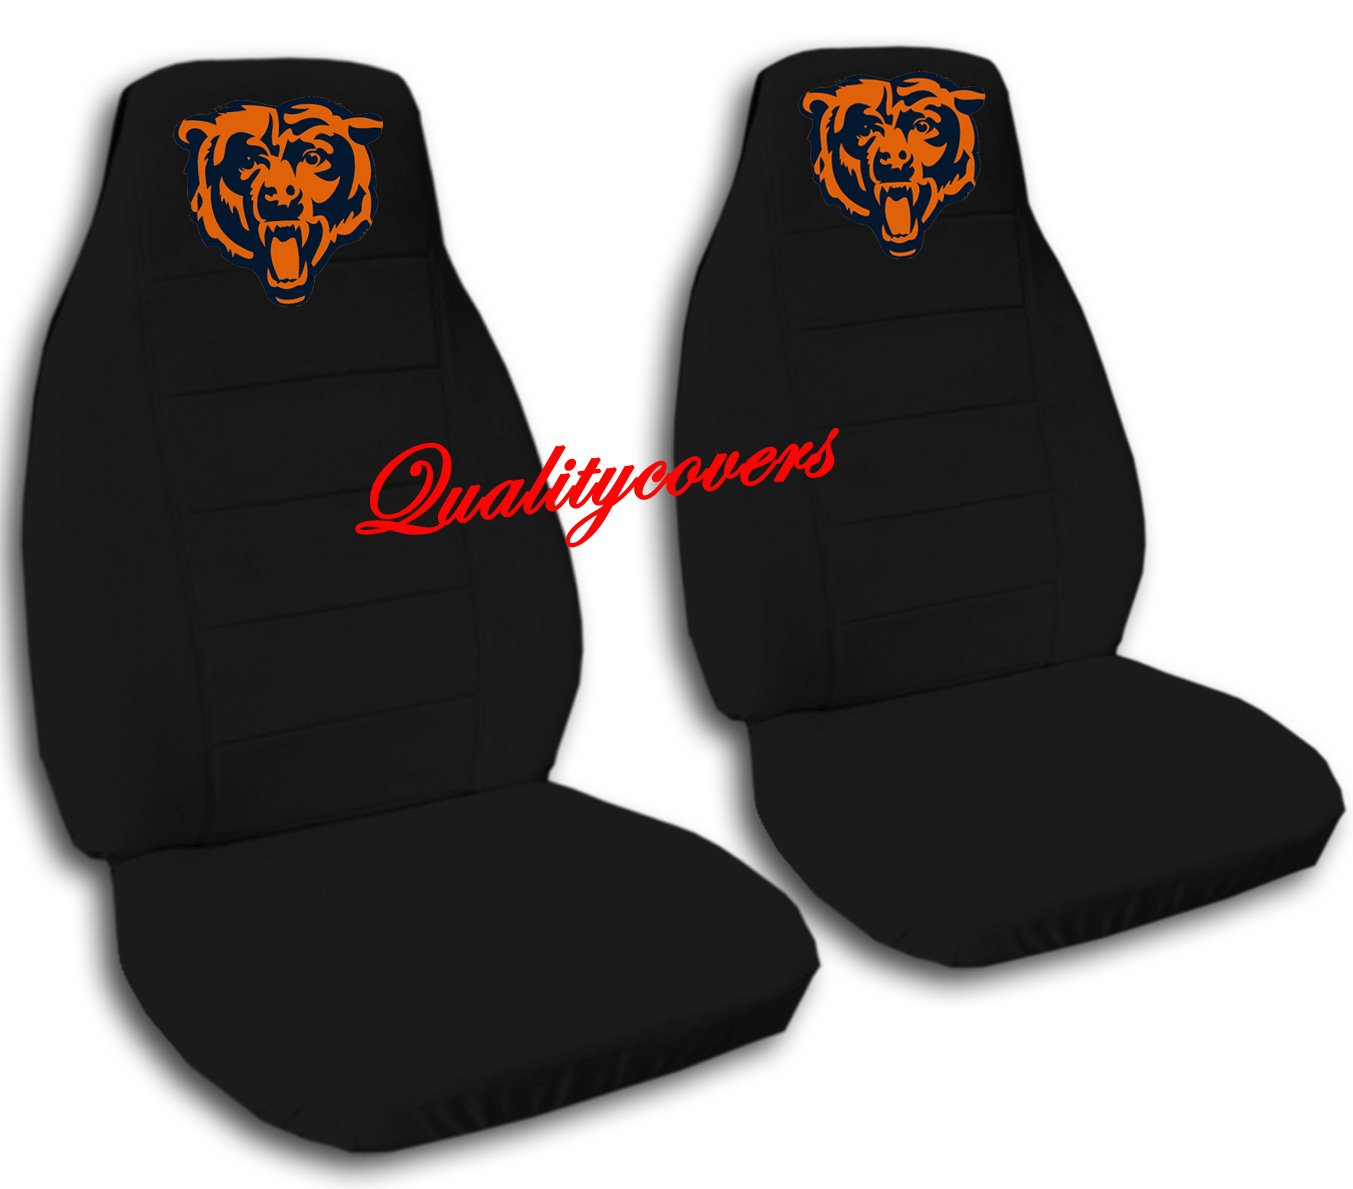 2 Black Chicago seat covers for a 2007 to 2012 Chevrolet Silverado. Side airbag friendly.